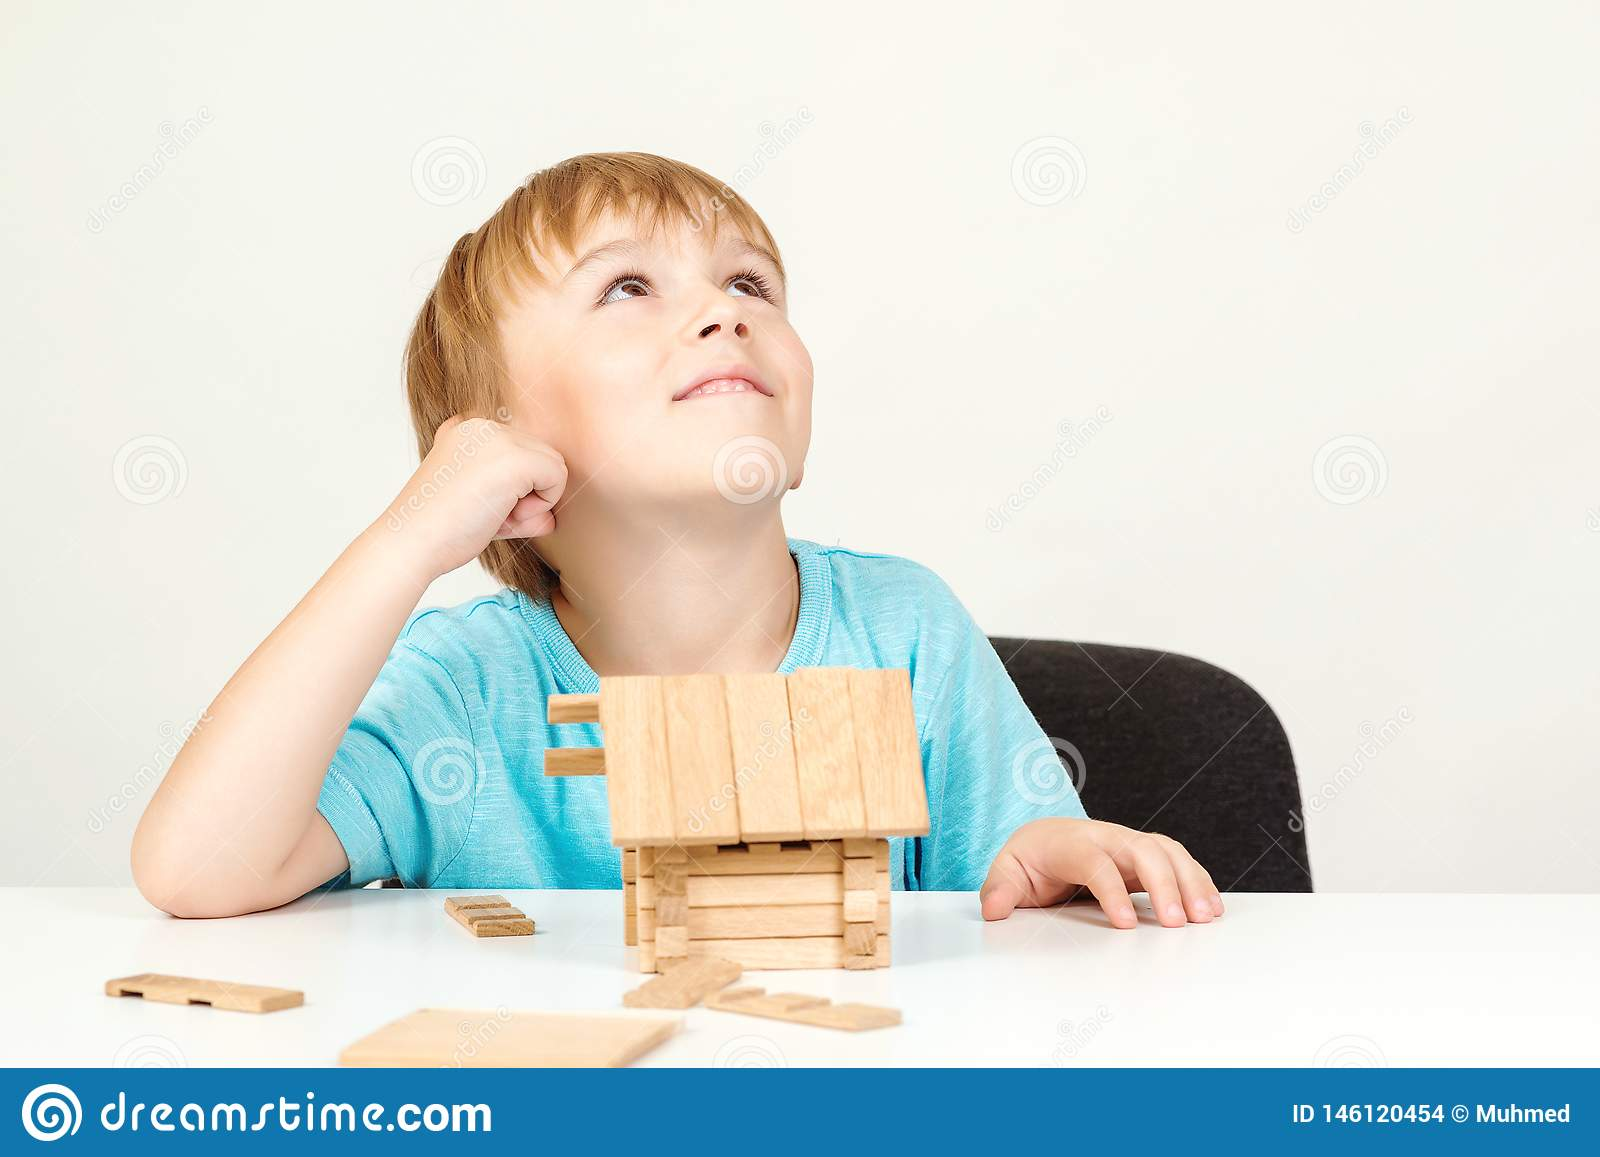 Happy child playing and building wooden home. Childhood dreams. Little boy builds his dream house. Happy life, house or mortgage